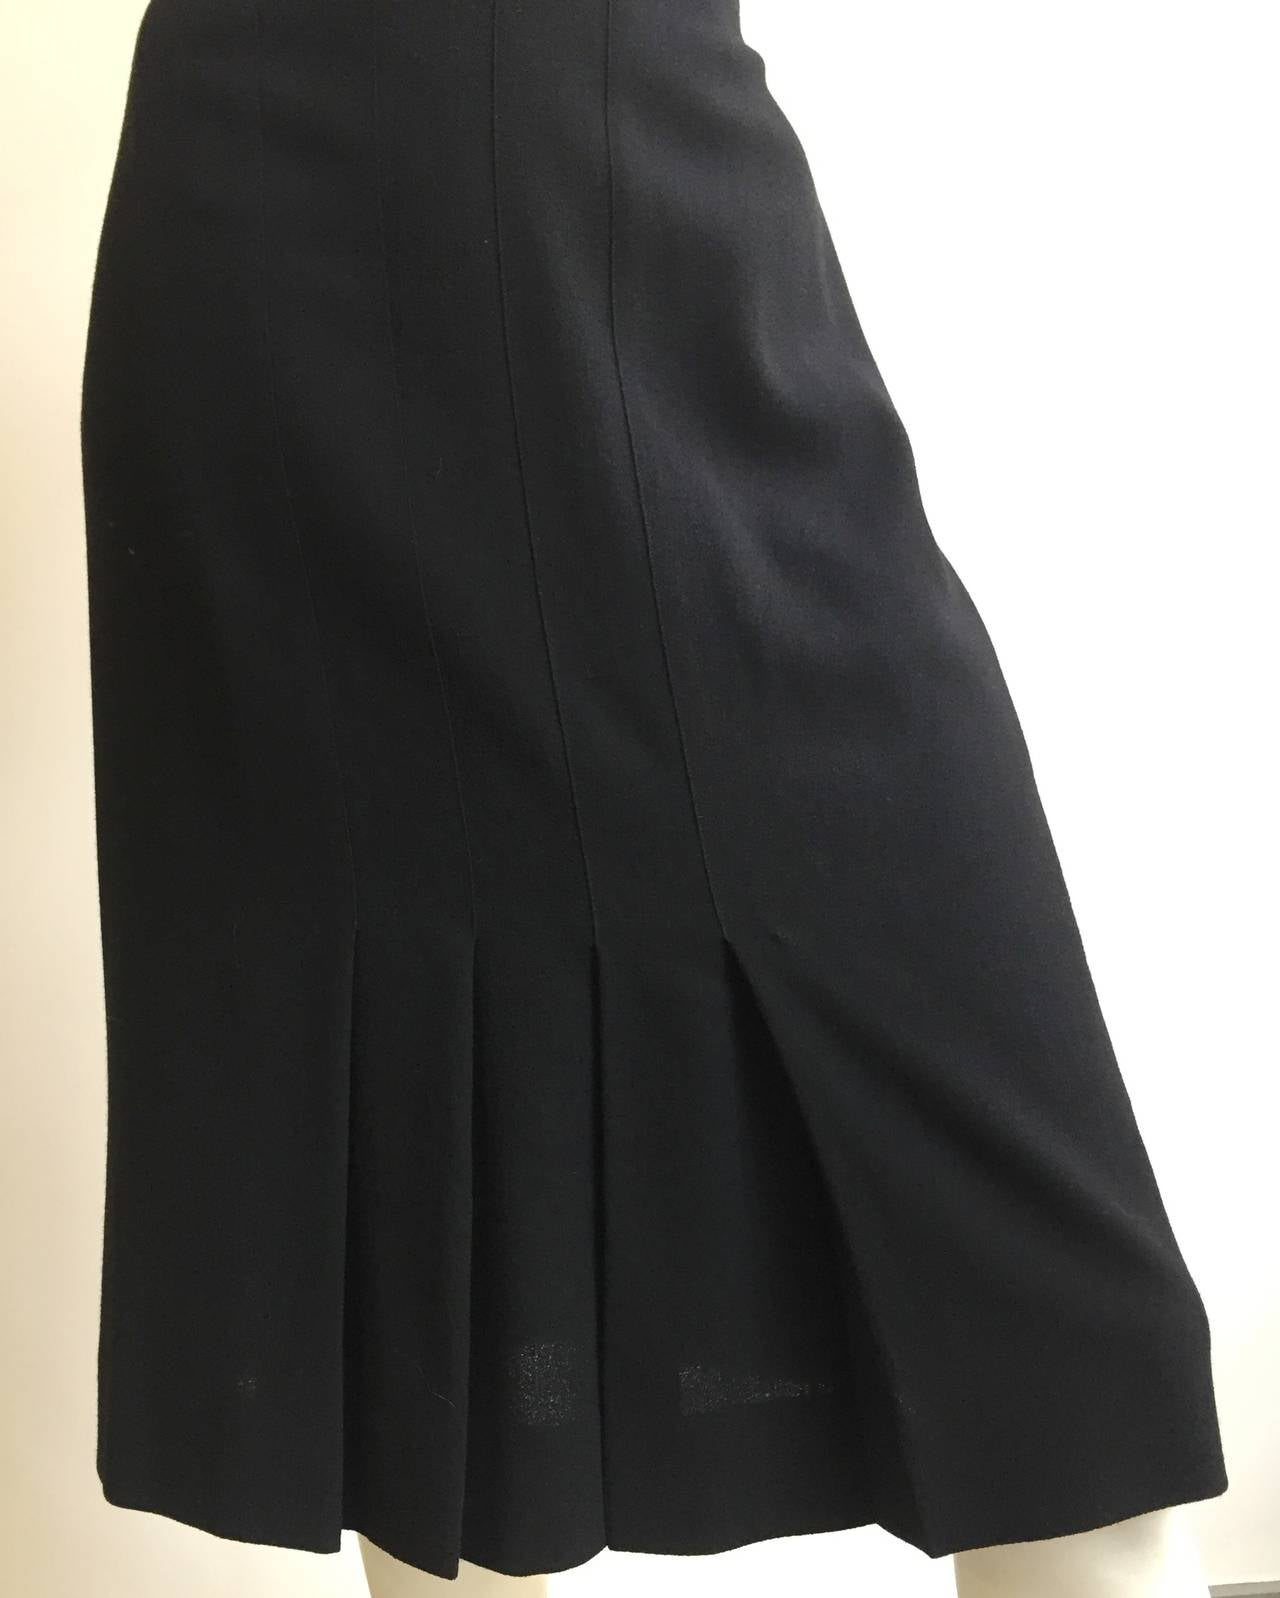 Chanel 80s Black Pleated Skirt Size 10. 2